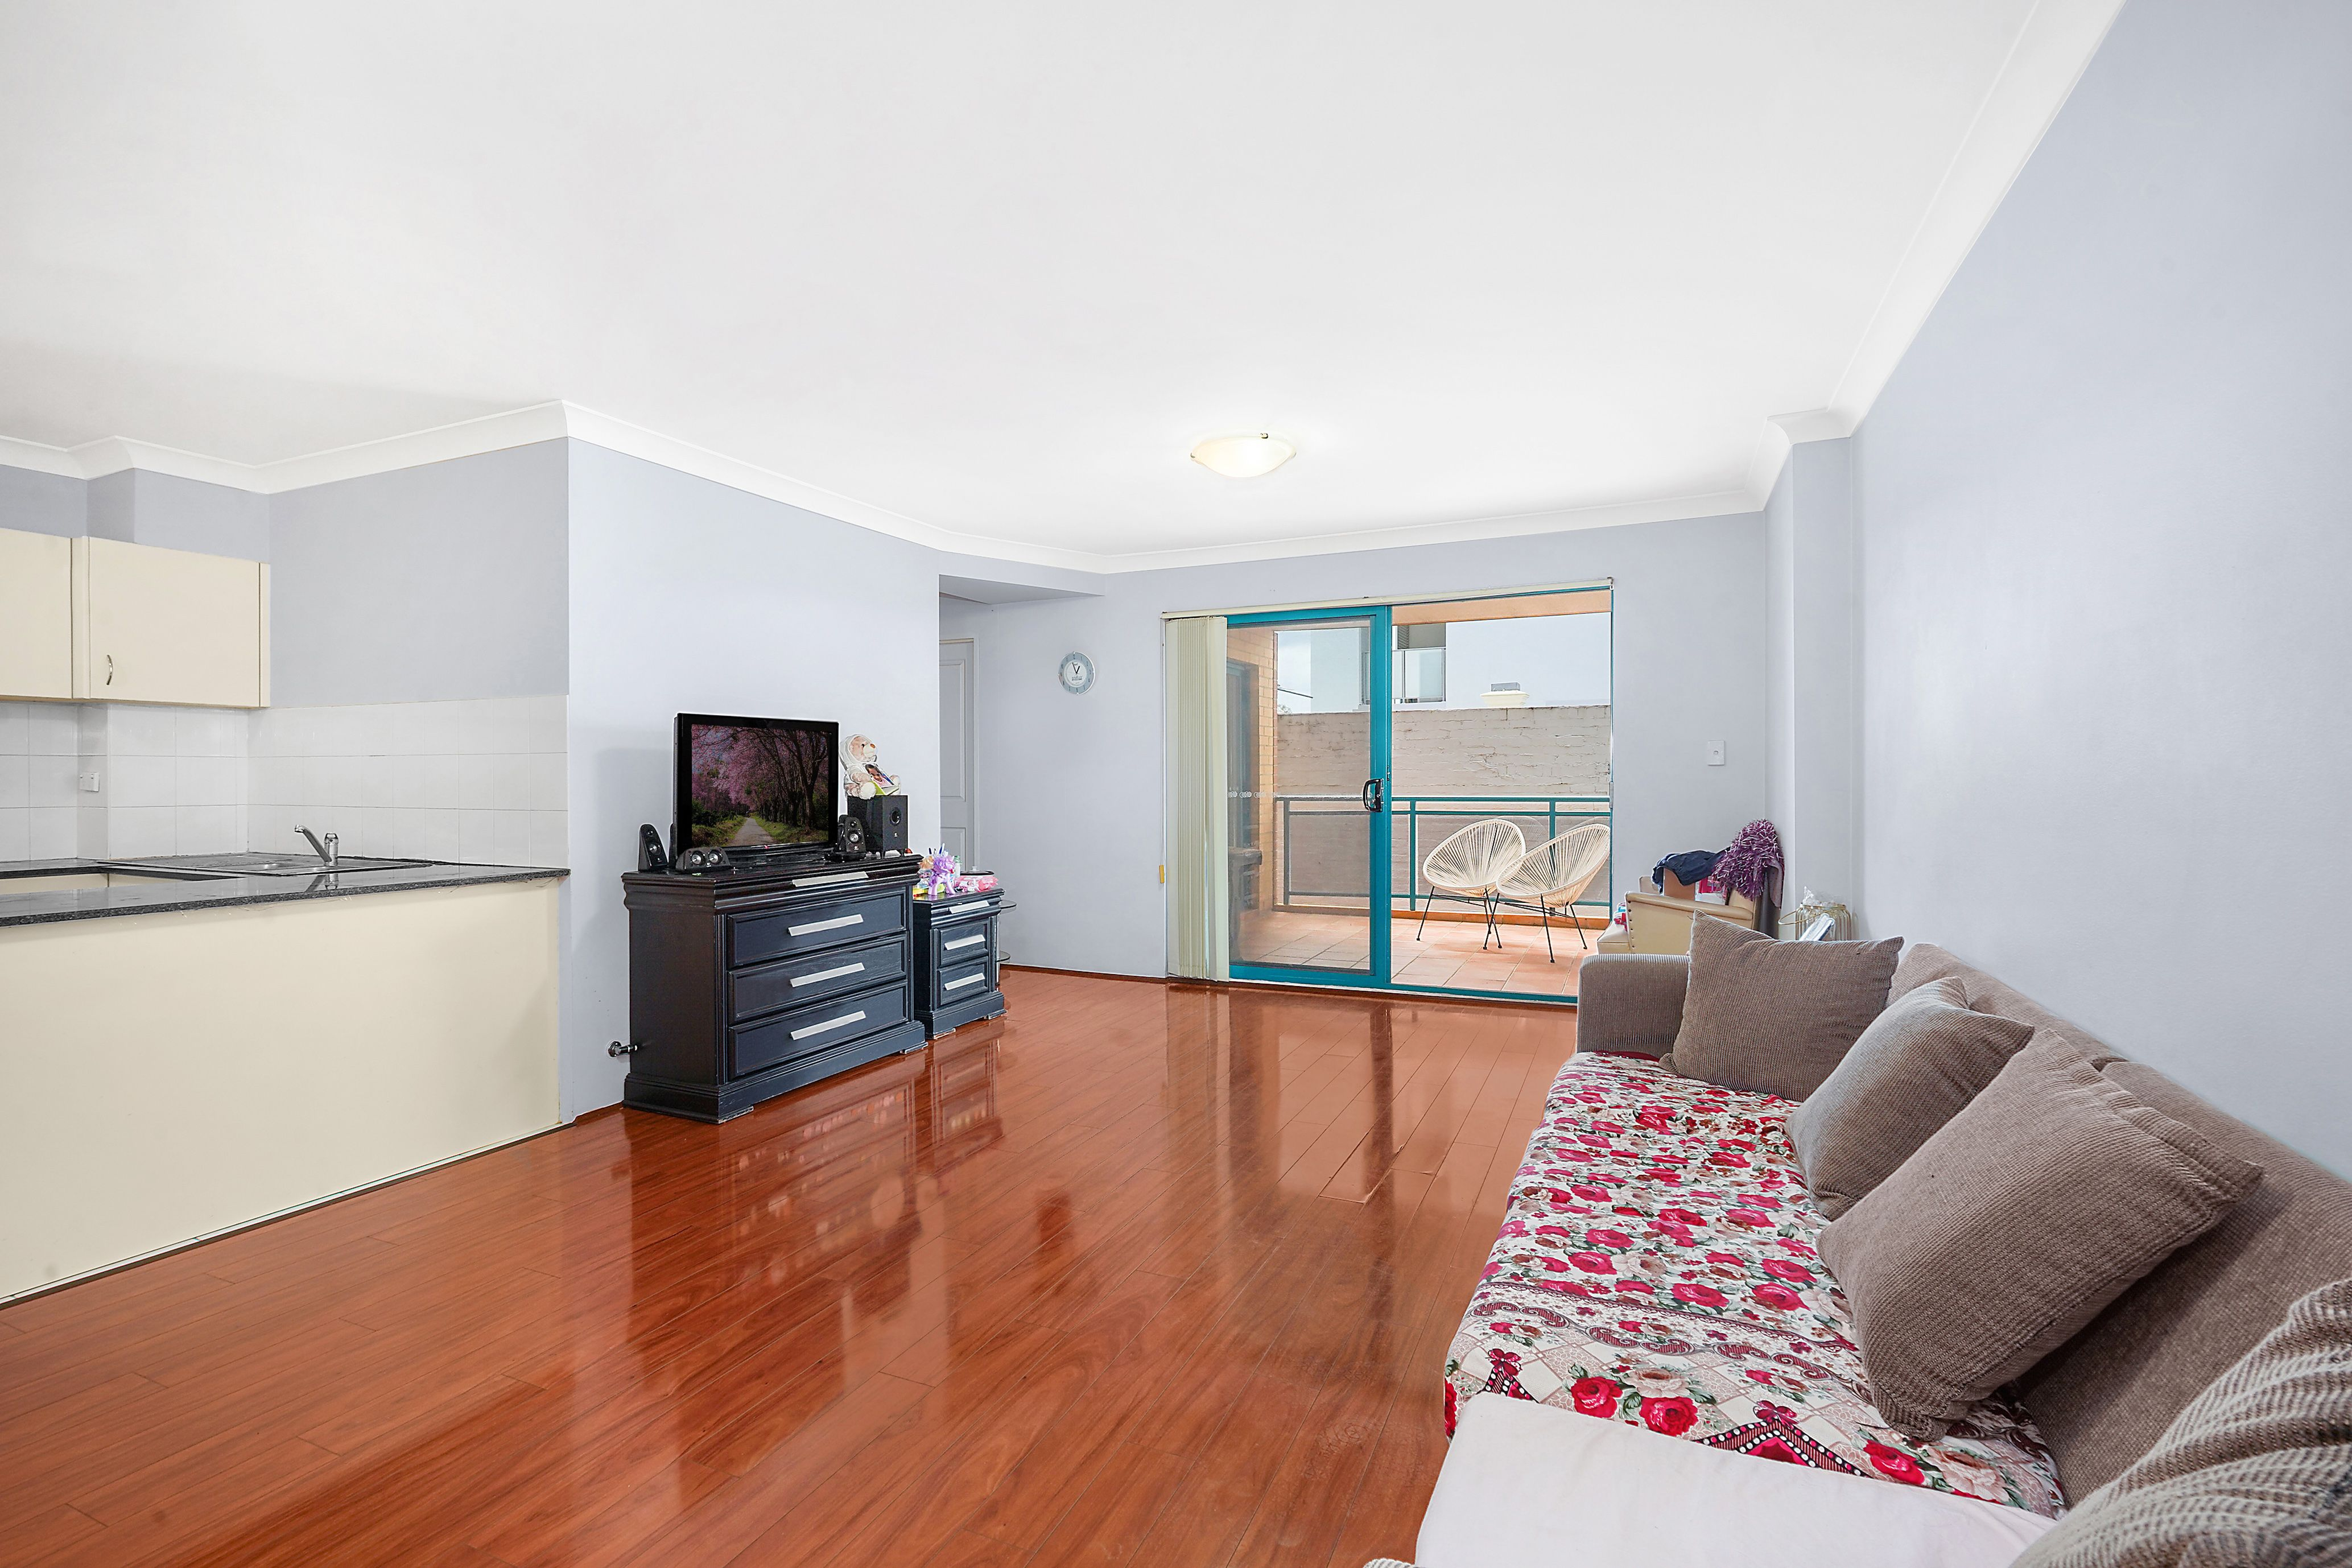 19/16-22 Burwood Road, Burwood NSW 2134